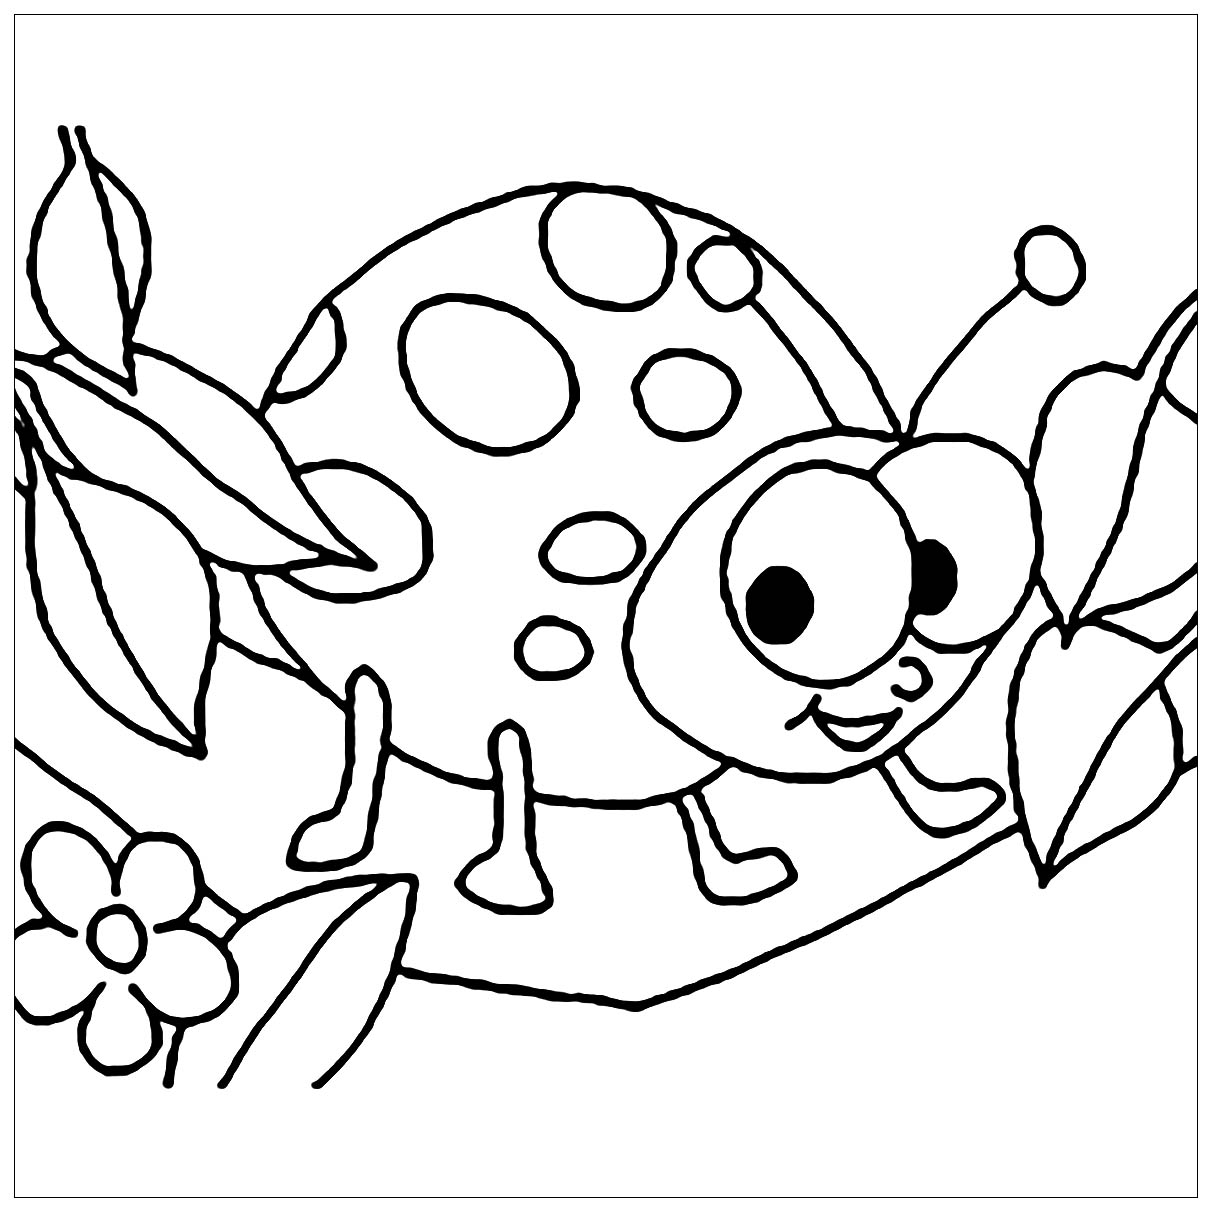 insects coloring sheets insect coloring pages to download and print for free coloring sheets insects 1 1